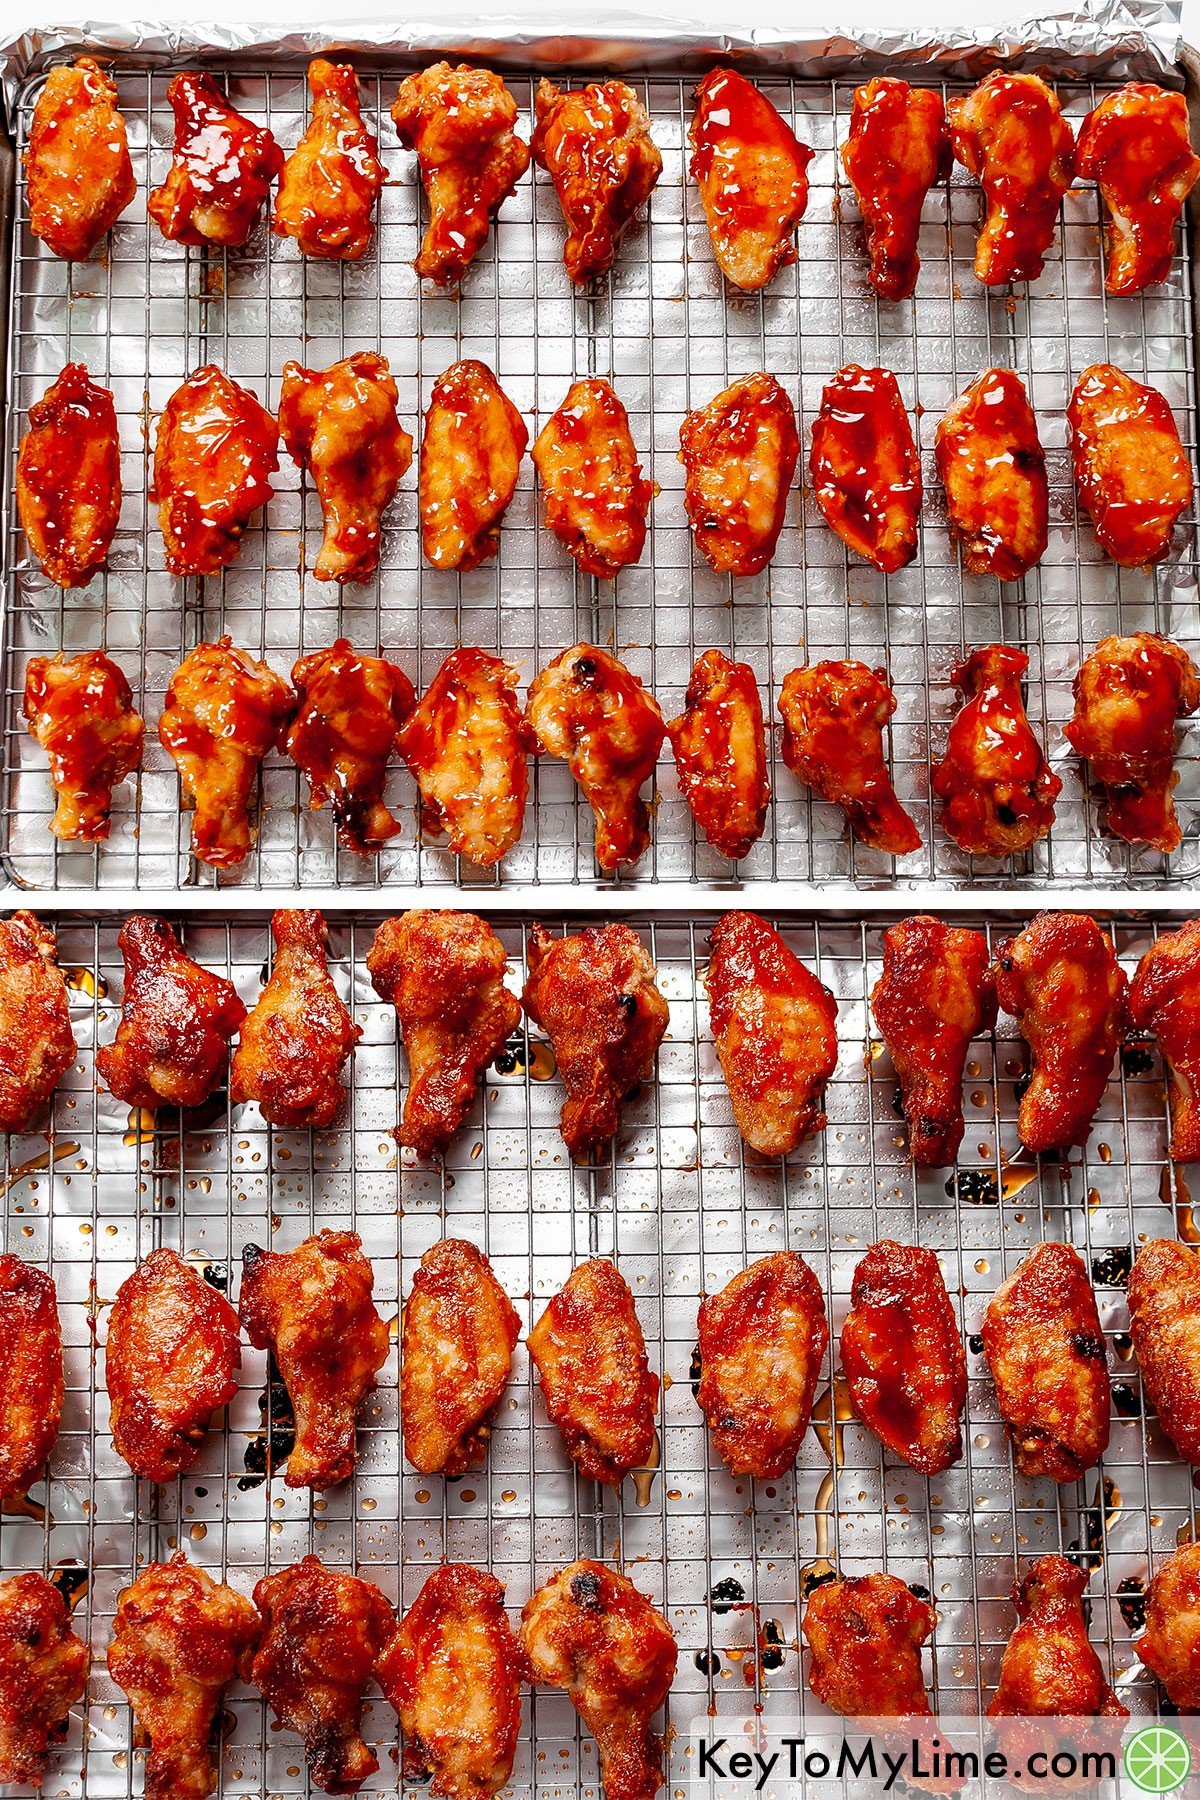 Sweet and sour chicken wings before and after baking.